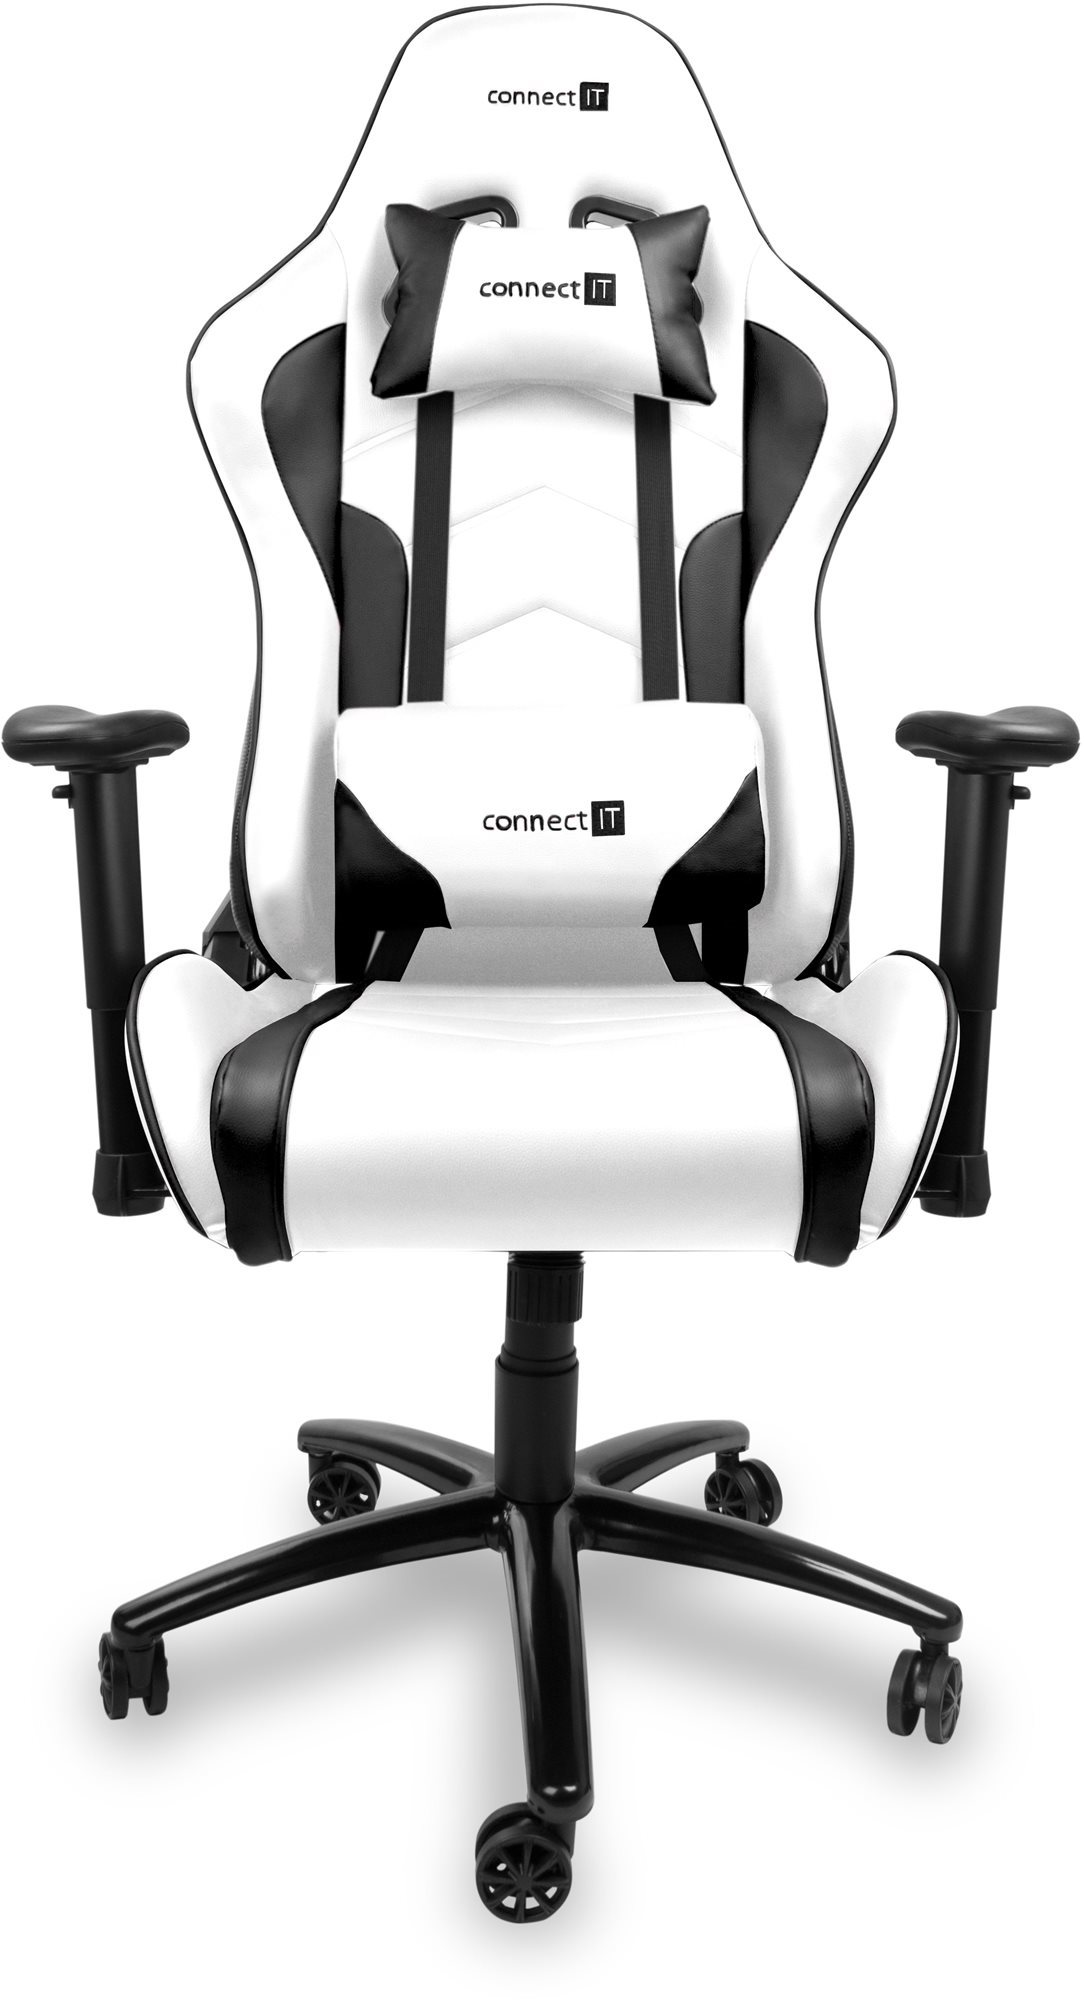 CONNECT IT Gaming Chair CGC-1160-WH